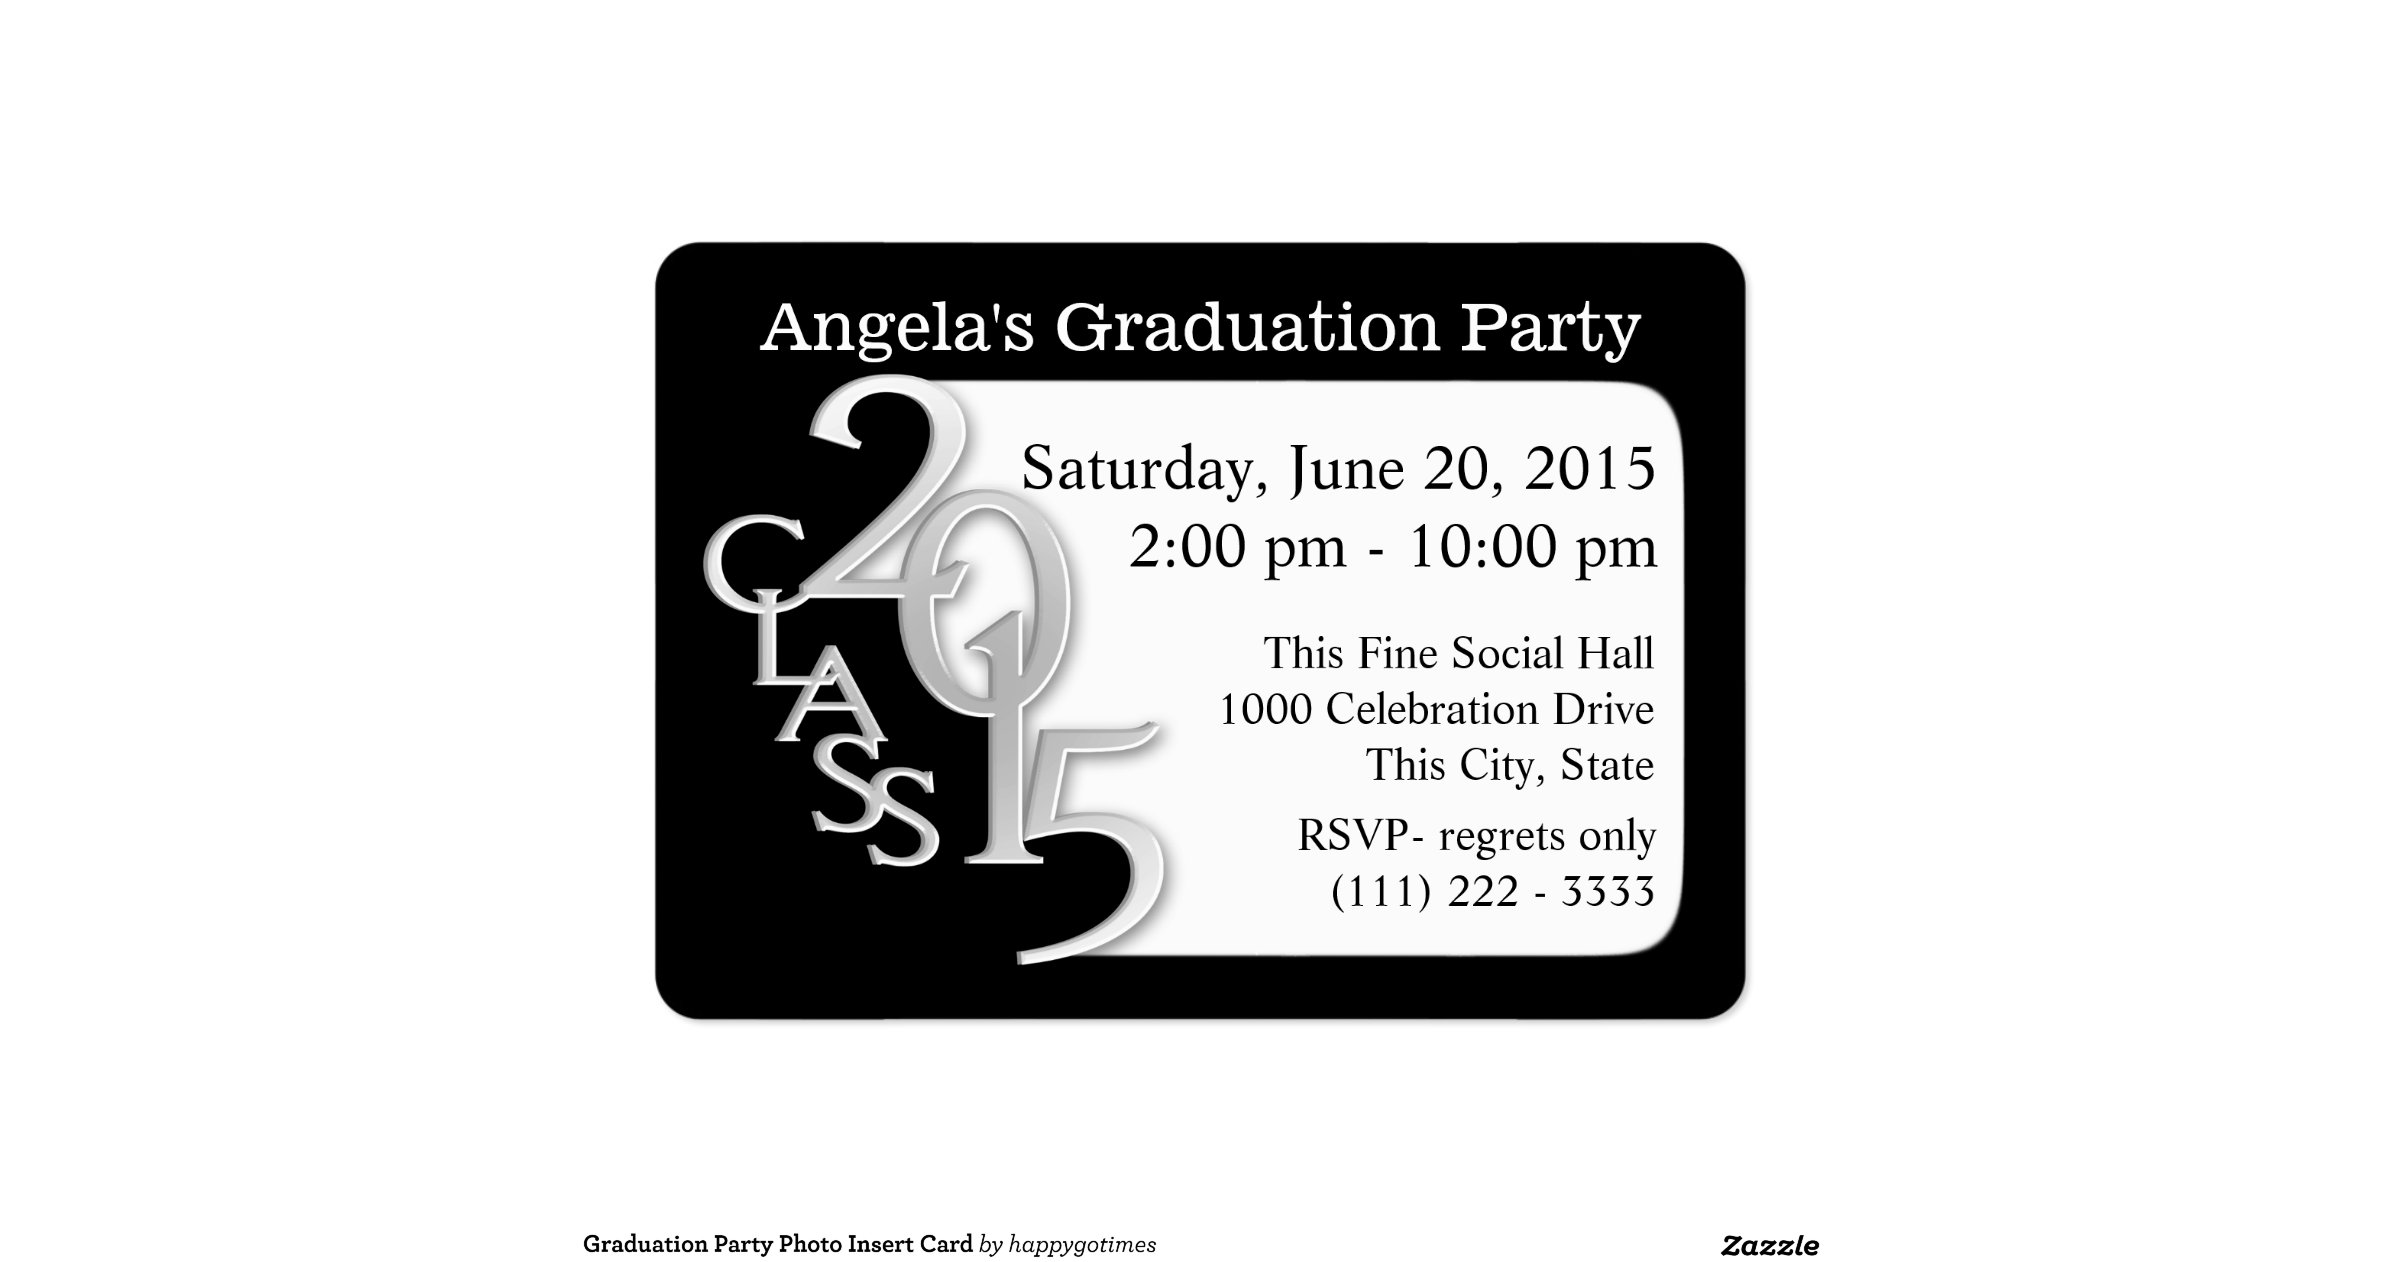 graduation party photo insert card pack of chubby business cards zazzle. Black Bedroom Furniture Sets. Home Design Ideas